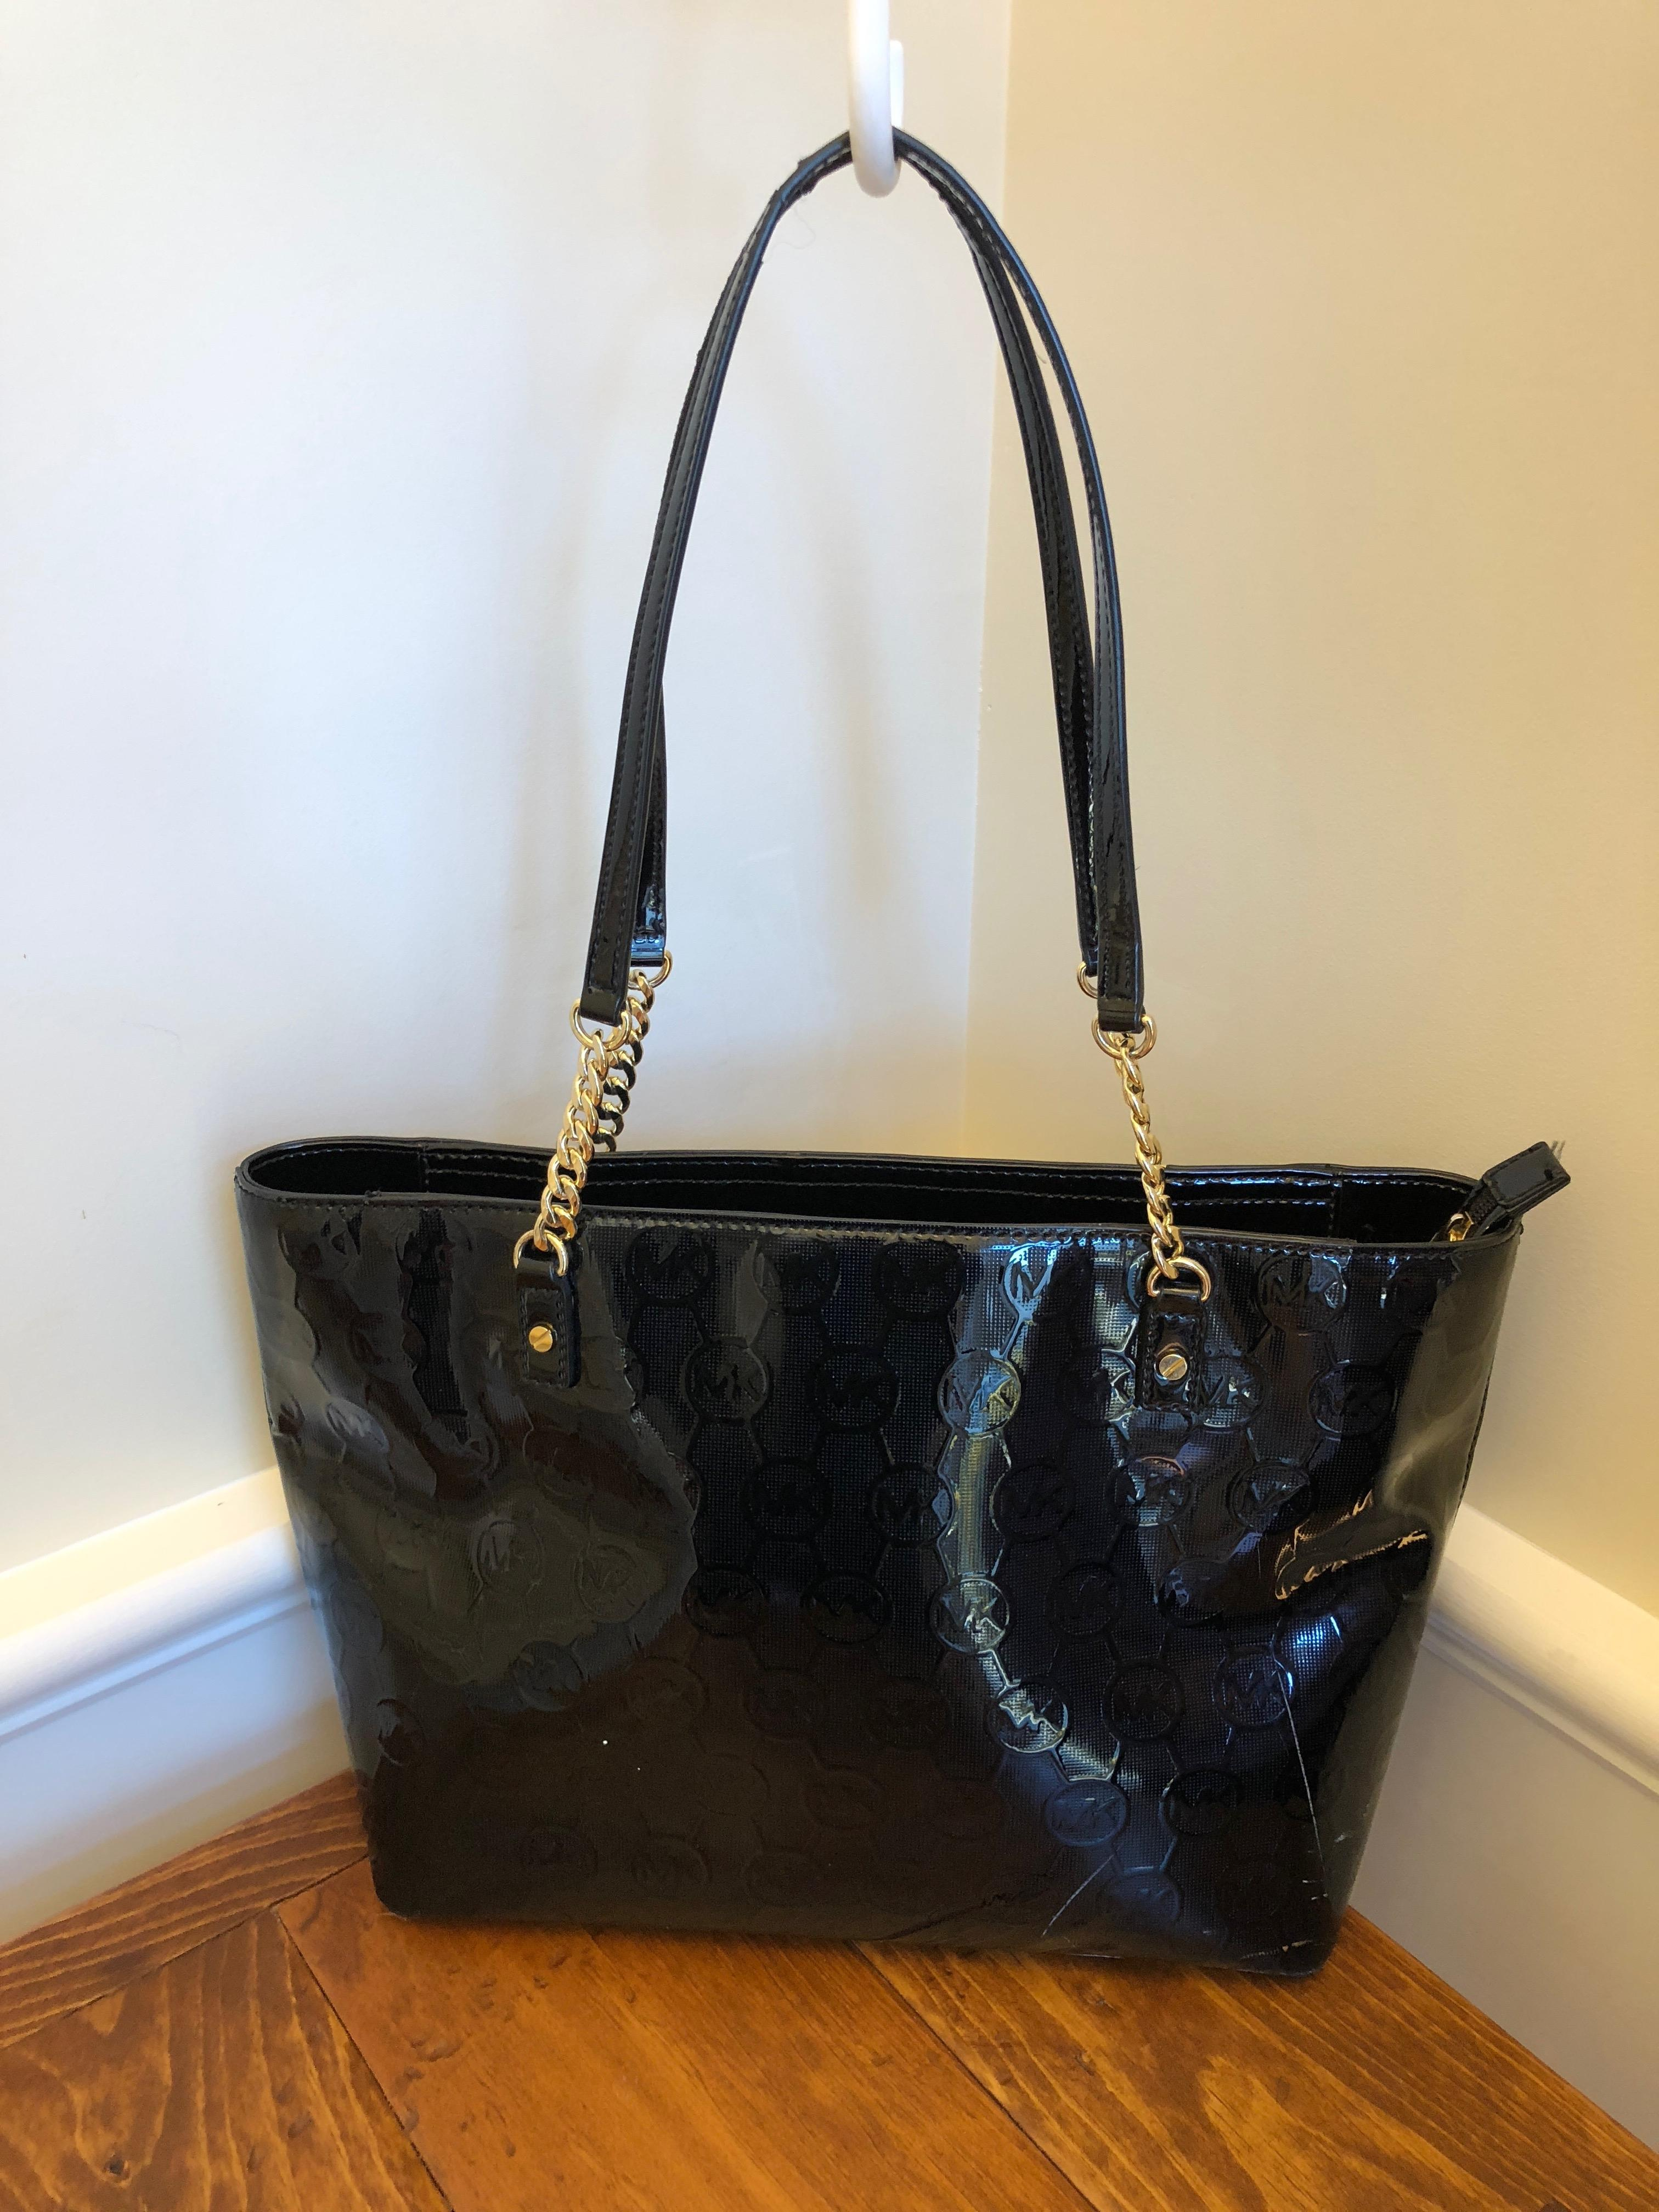 894c74f1967b ... shoulder tote caa4b 6995c; switzerland michael kors jet set chain mk  signature embossed black patent 3a857 88c5c